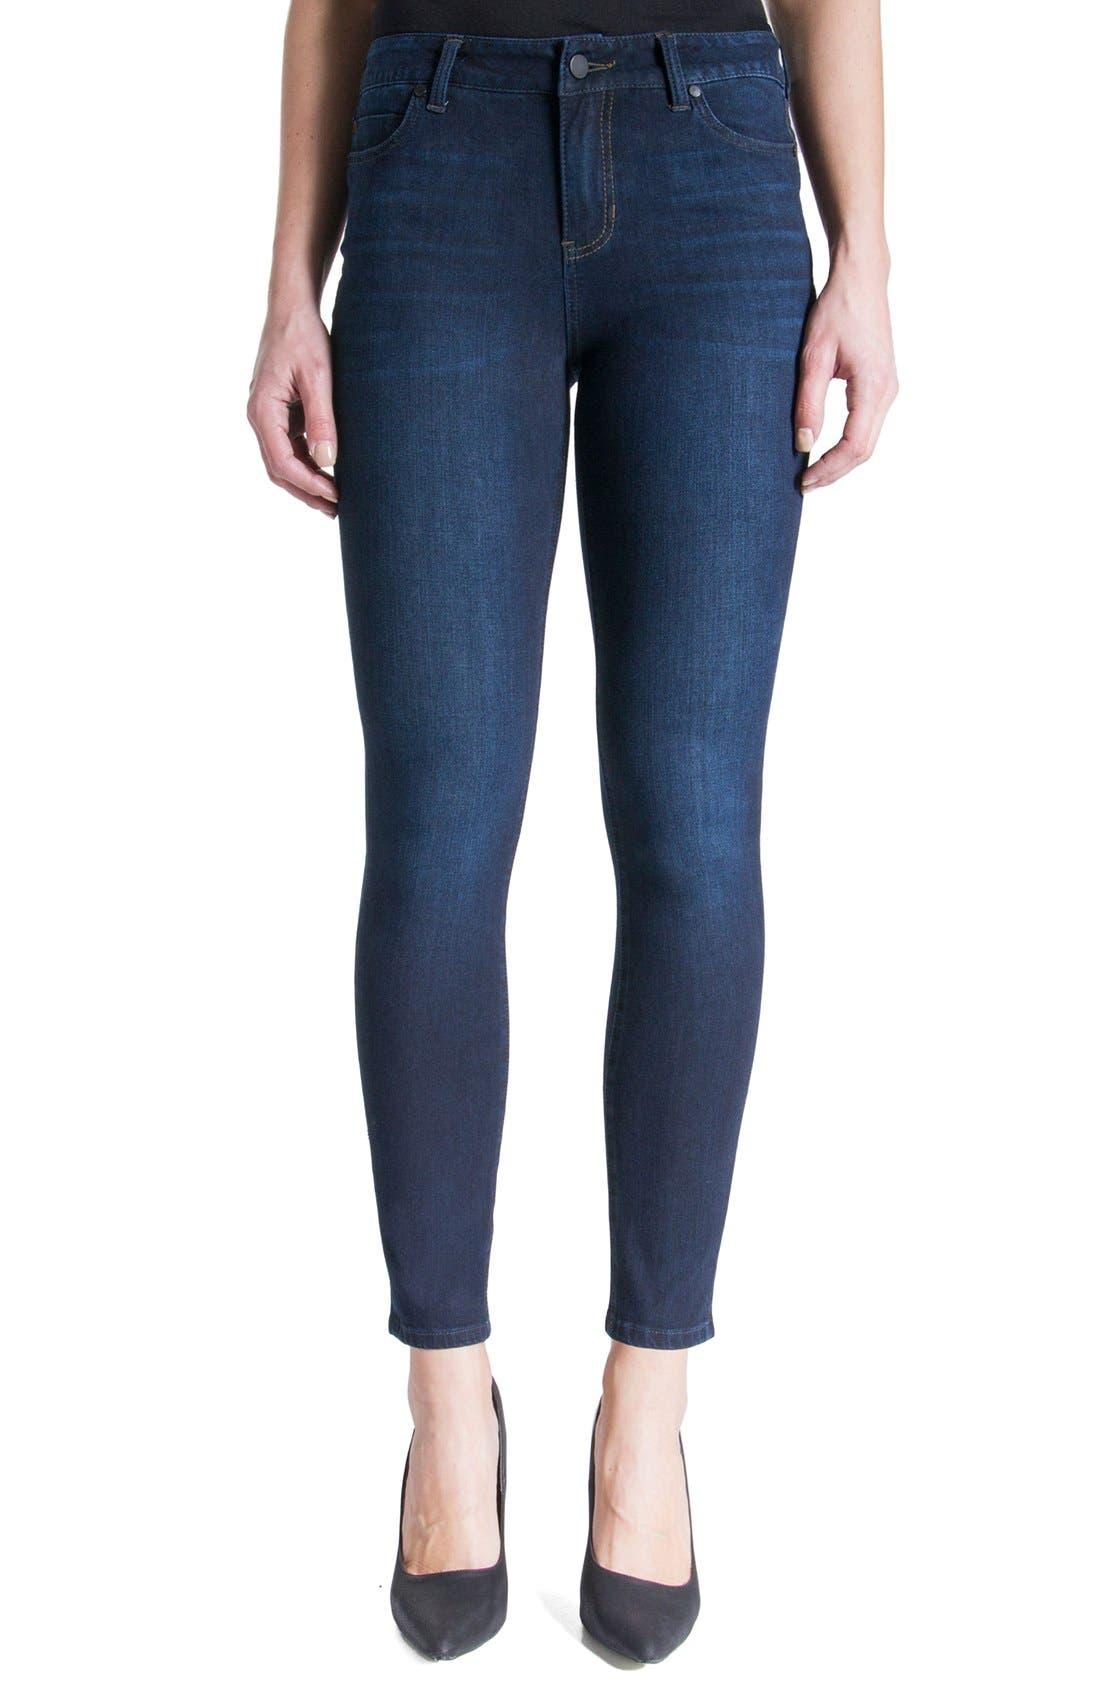 Jeans Company Piper Hugger Lift Sculpt Ankle Skinny Jeans,                             Main thumbnail 2, color,